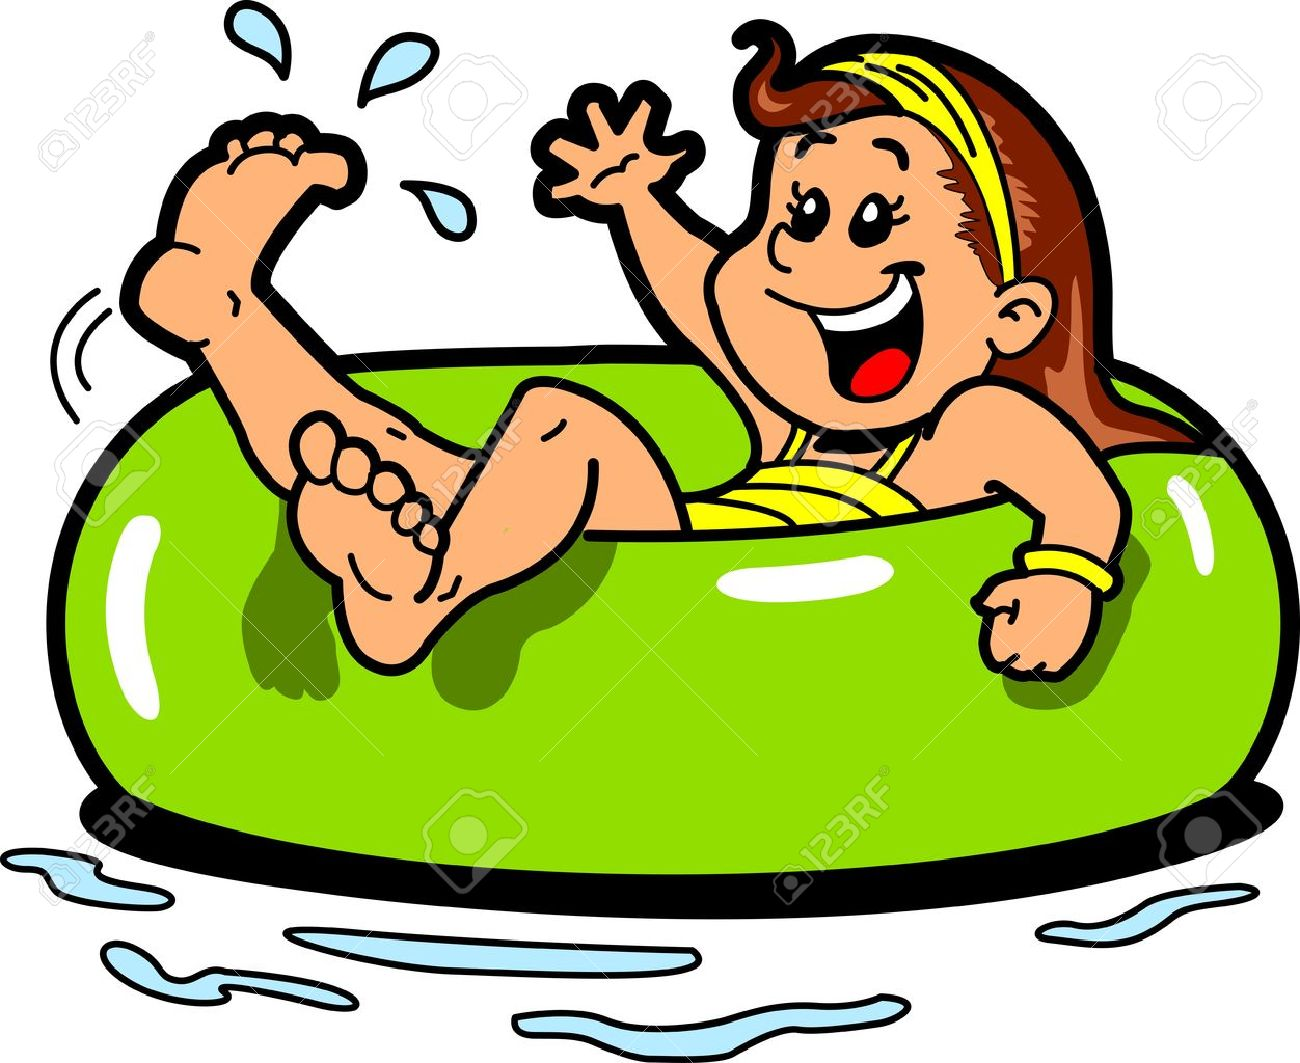 Happy Girl Floating on the Water in an Inner Tube Flotation Device Stock Vector - 20686736